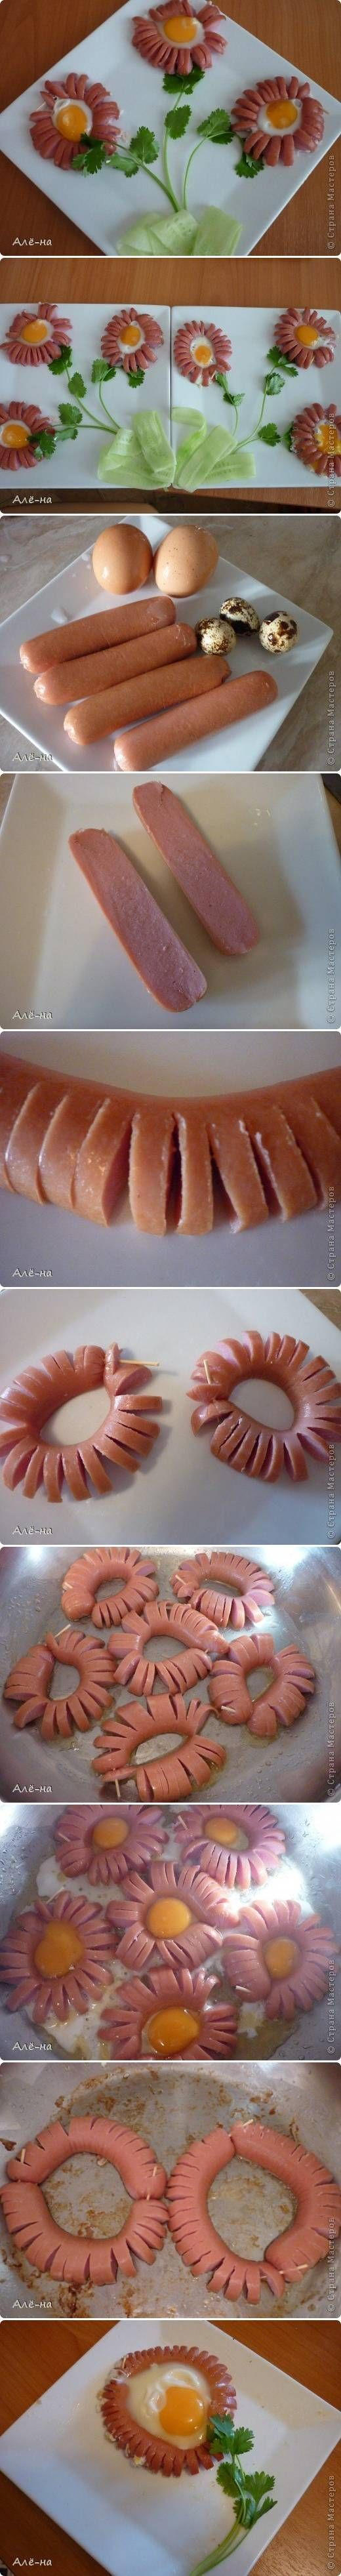 DIY Hot Dog Daisy